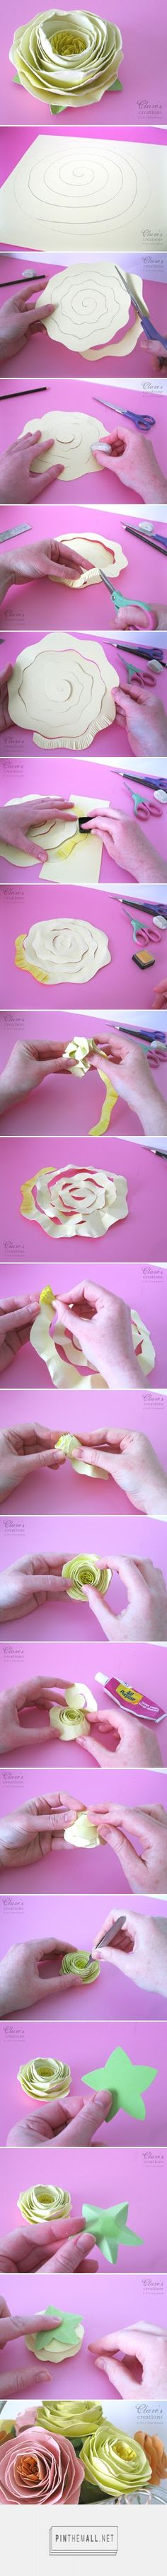 Clare's creations: Shabby rolled spiral flower tutorial (lots of photos!)